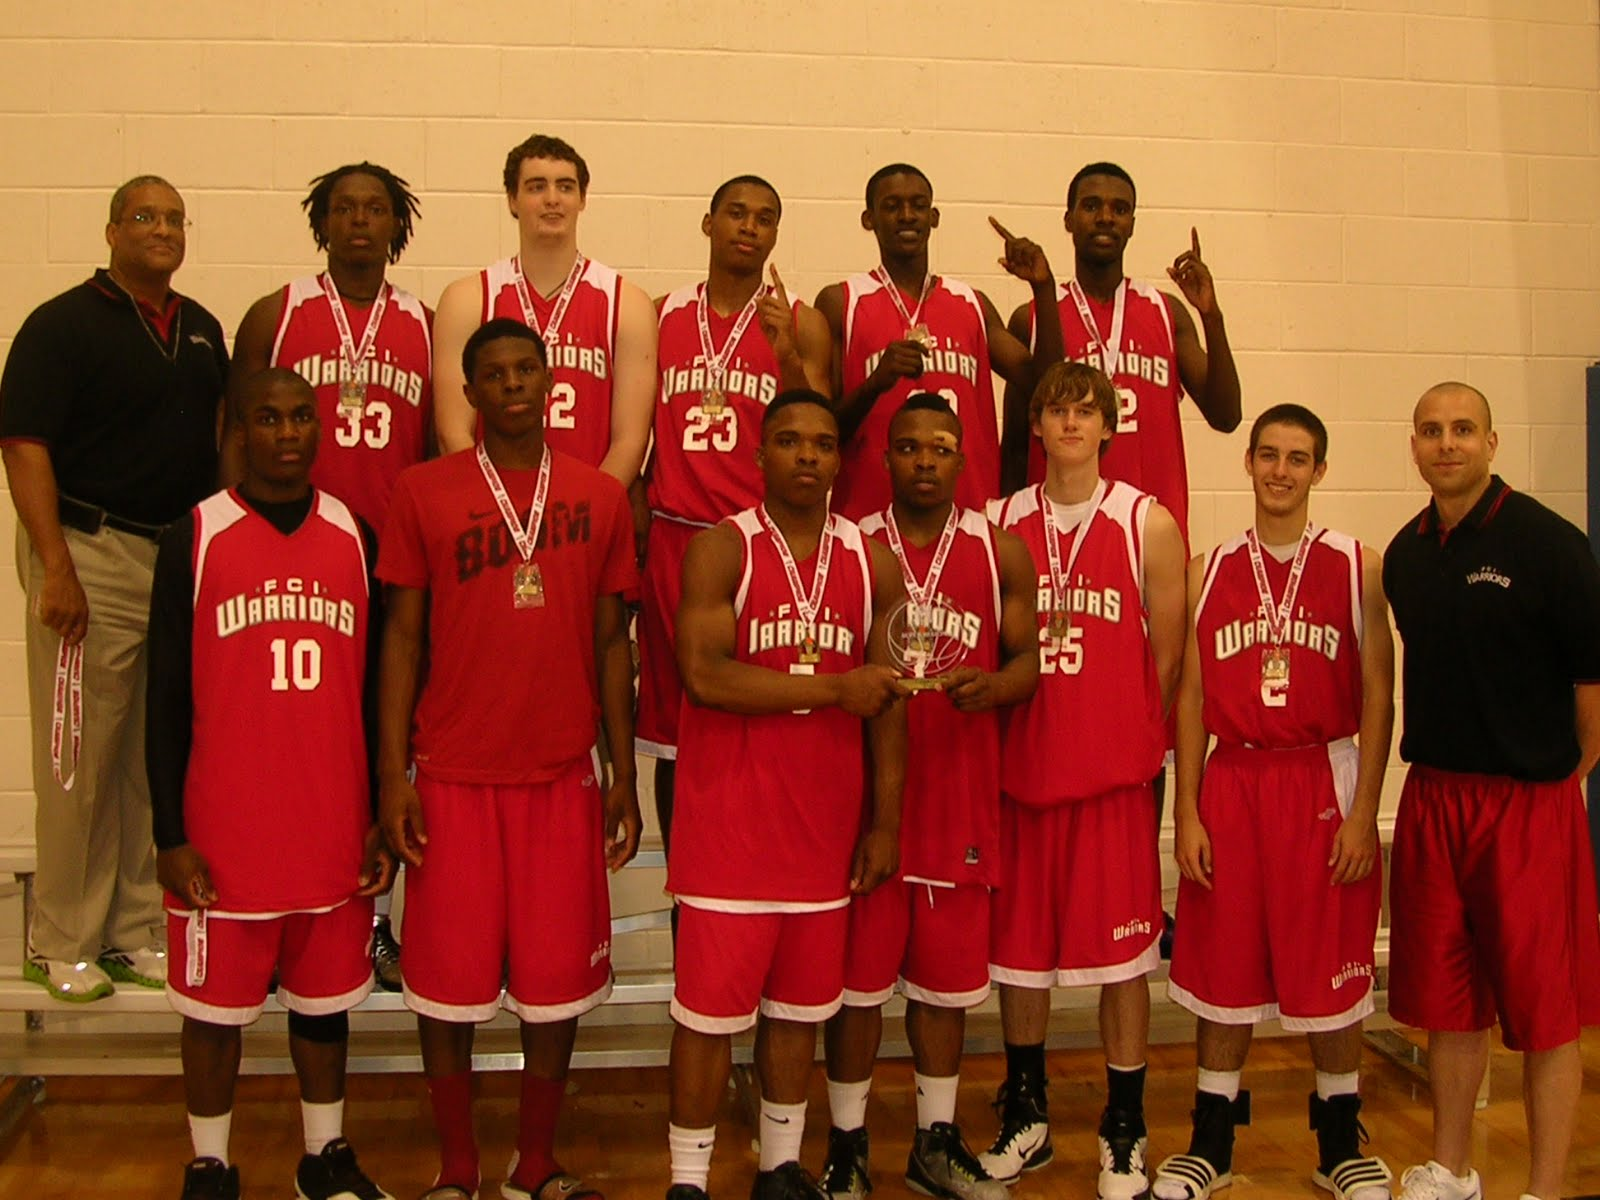 FCI Warriors Sweep ATL AAU Super Regional Remain Undefeated